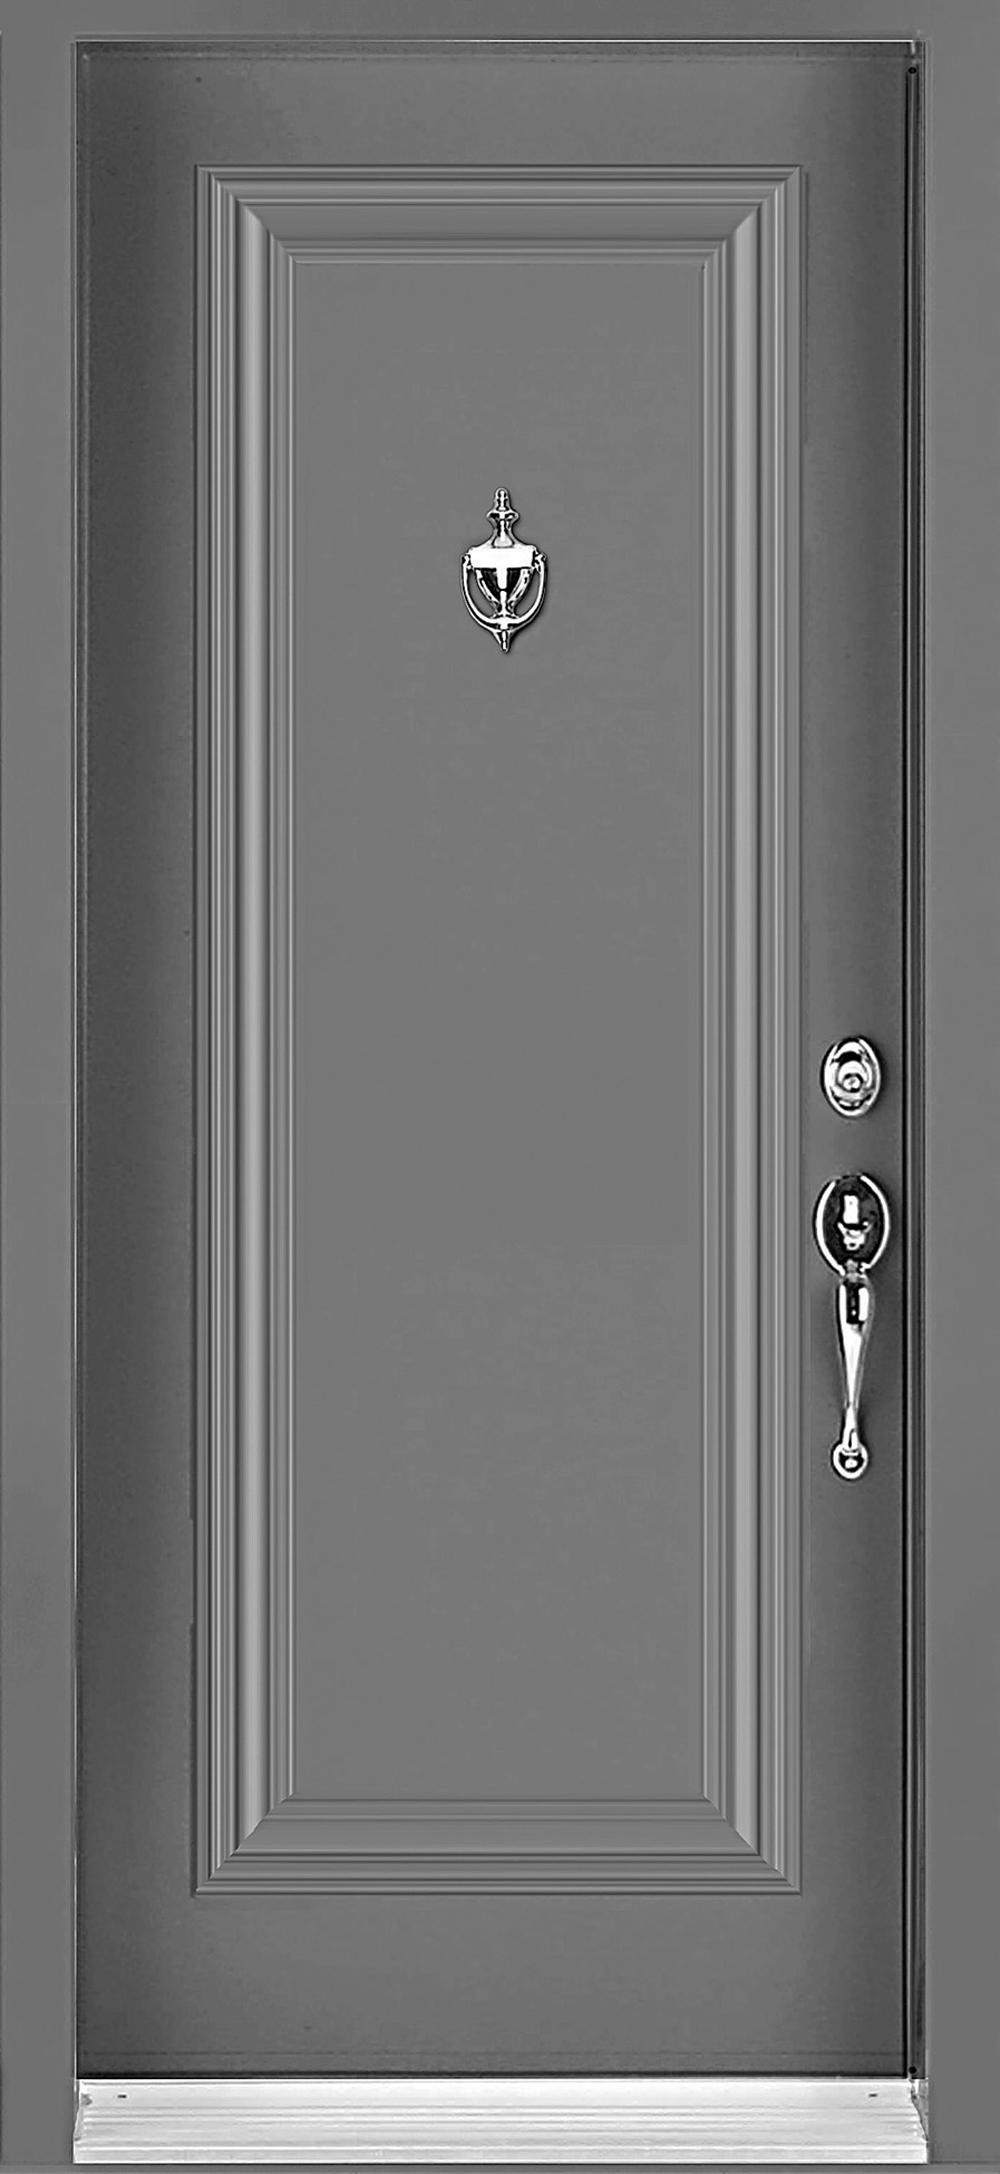 28 jeld wen exterior doors prices jeld wen exterior custom for 28 exterior door